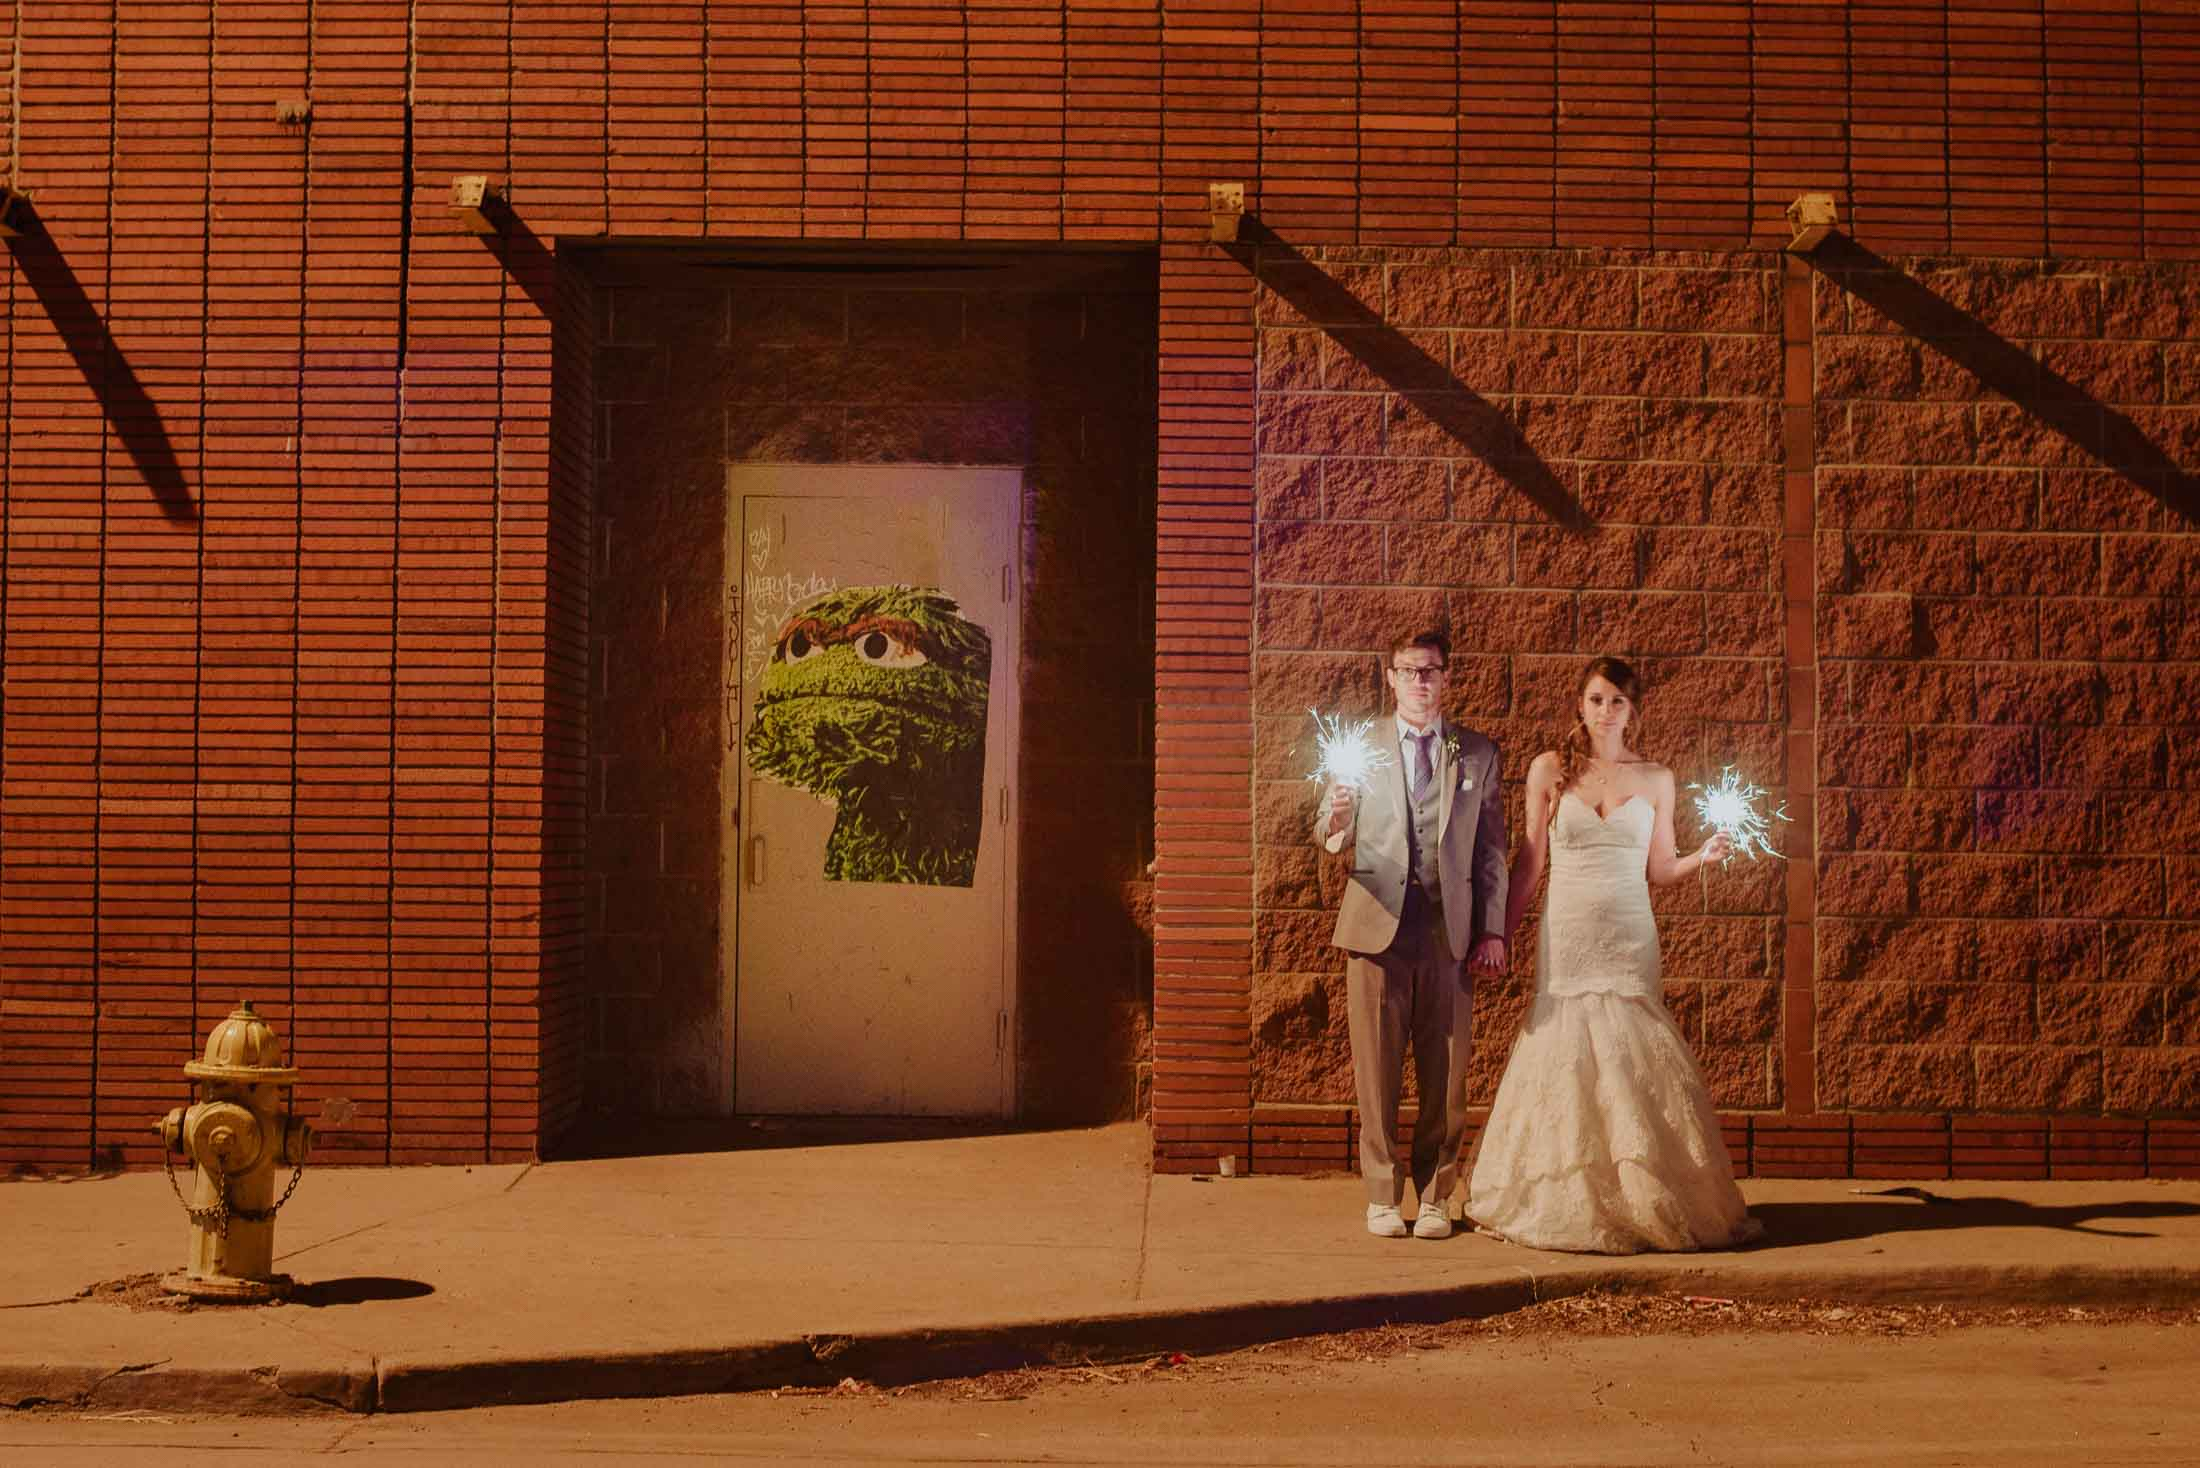 Night portrait bride and groom